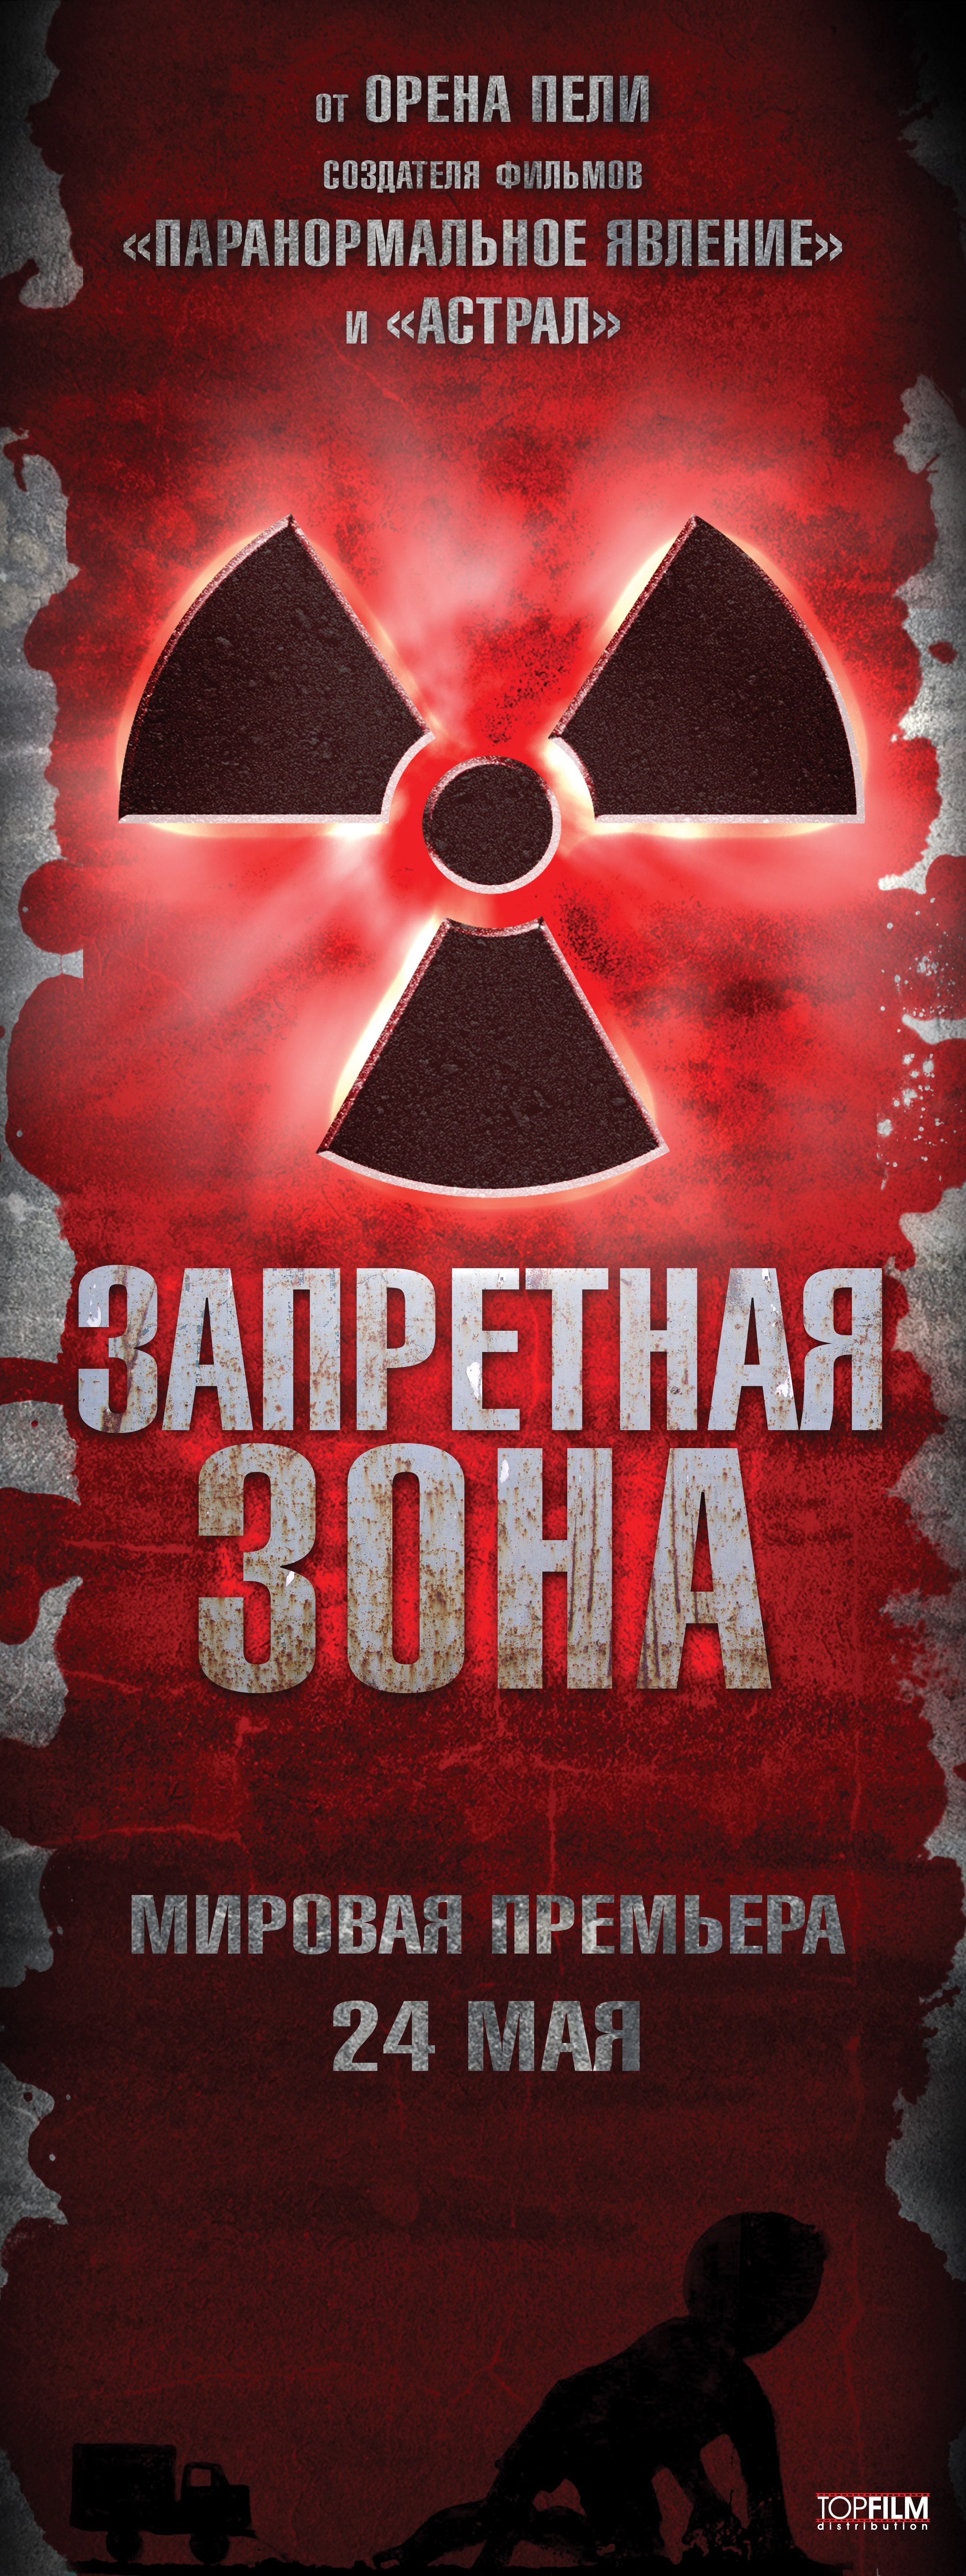 Images of Chernobyl Diaries 2 - #rock-cafe